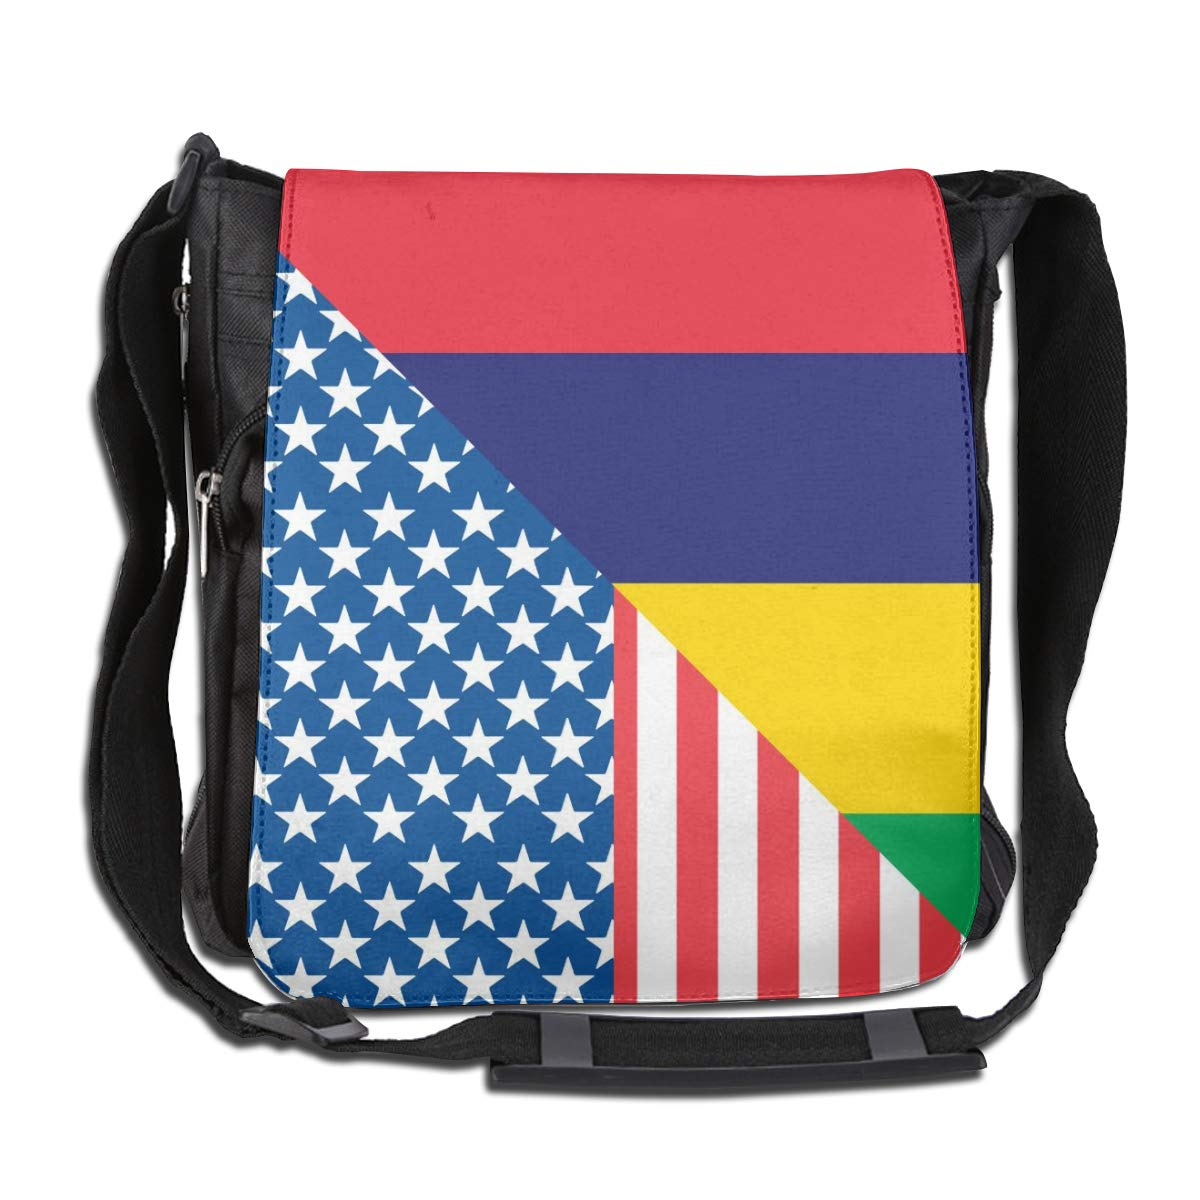 Unisex Durable Satchel Messenger Bags American And Mauritius Flag2 Crossbody Shoulder Bag Side Bags For School//Work//Trips